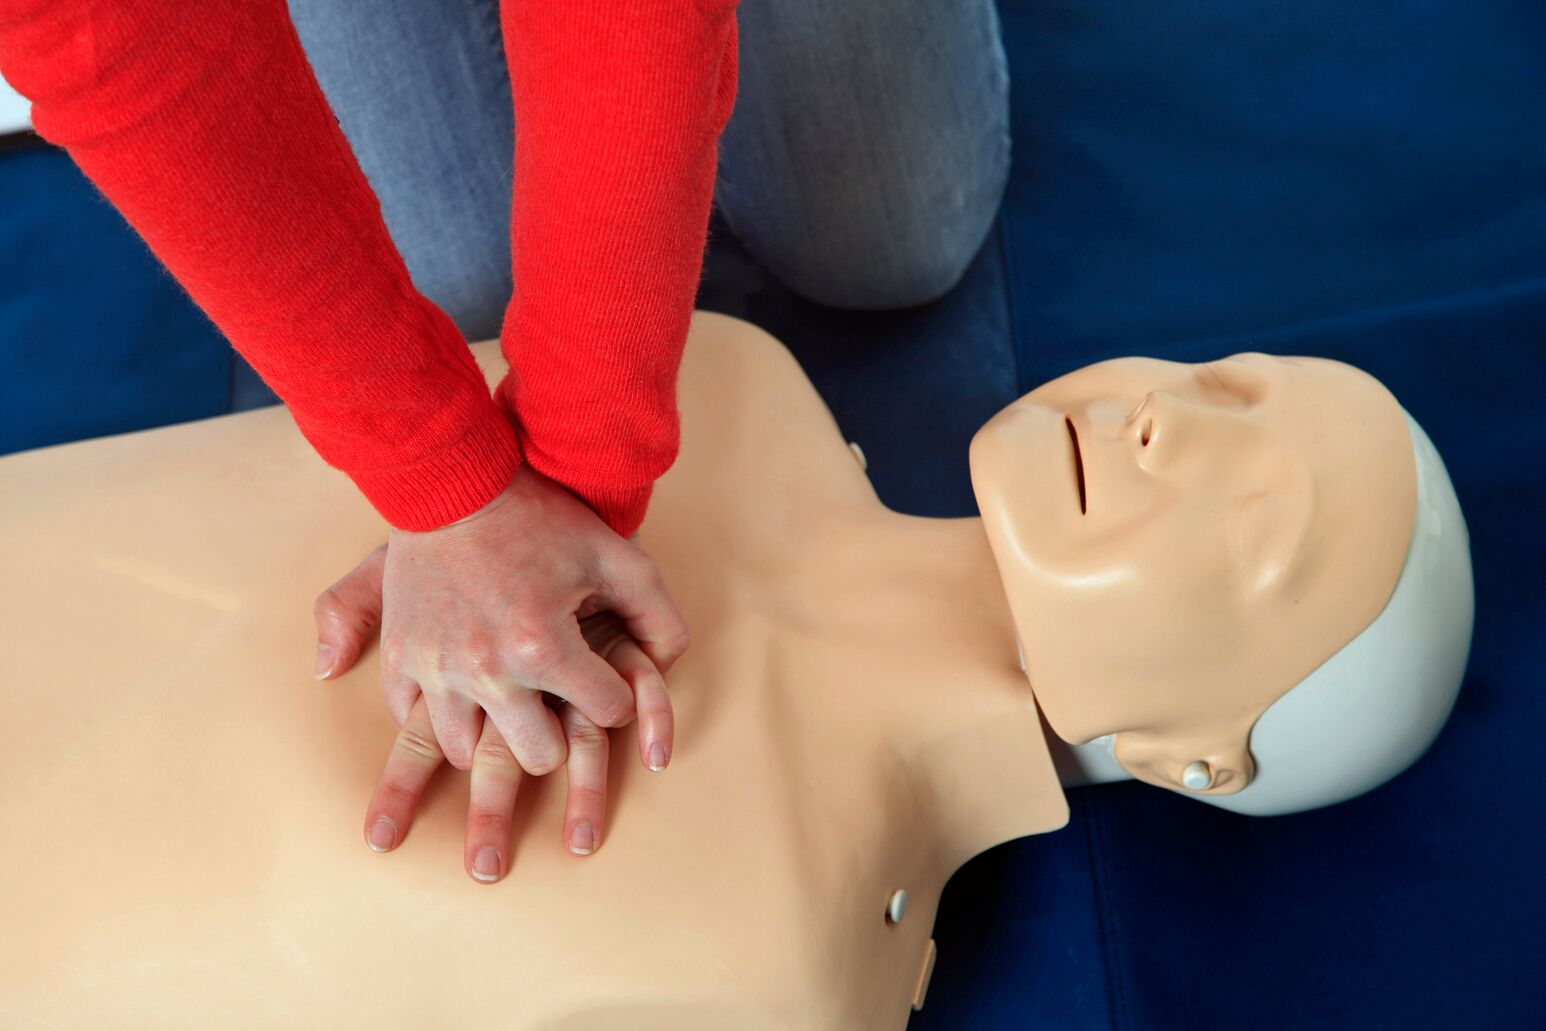 Hands push against a CPR dummy